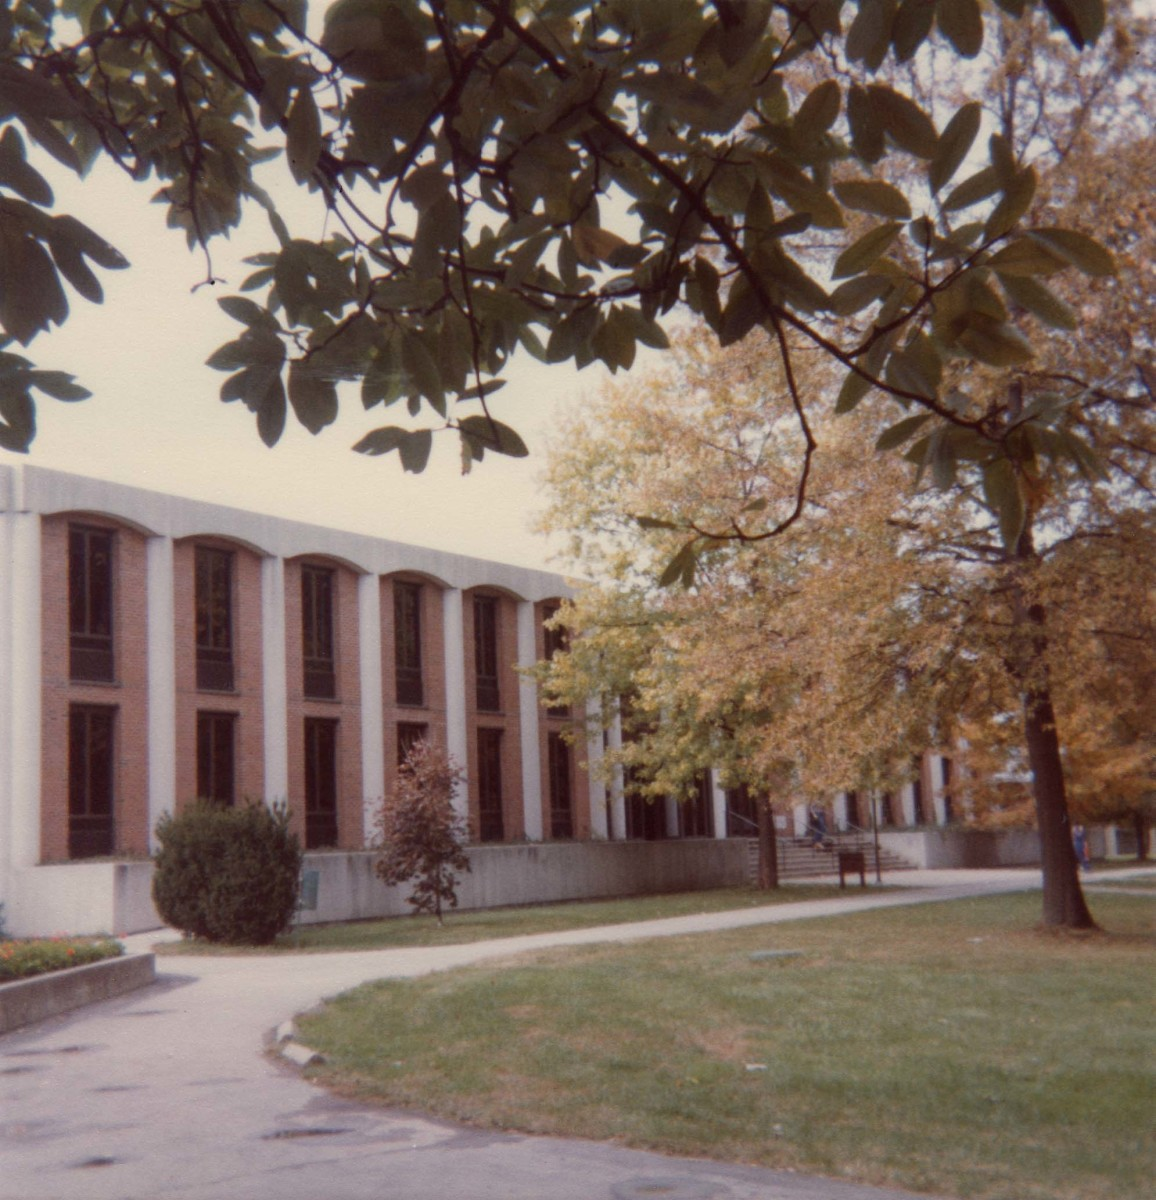 Hutchins Library, home of several special collections, is open to the public.